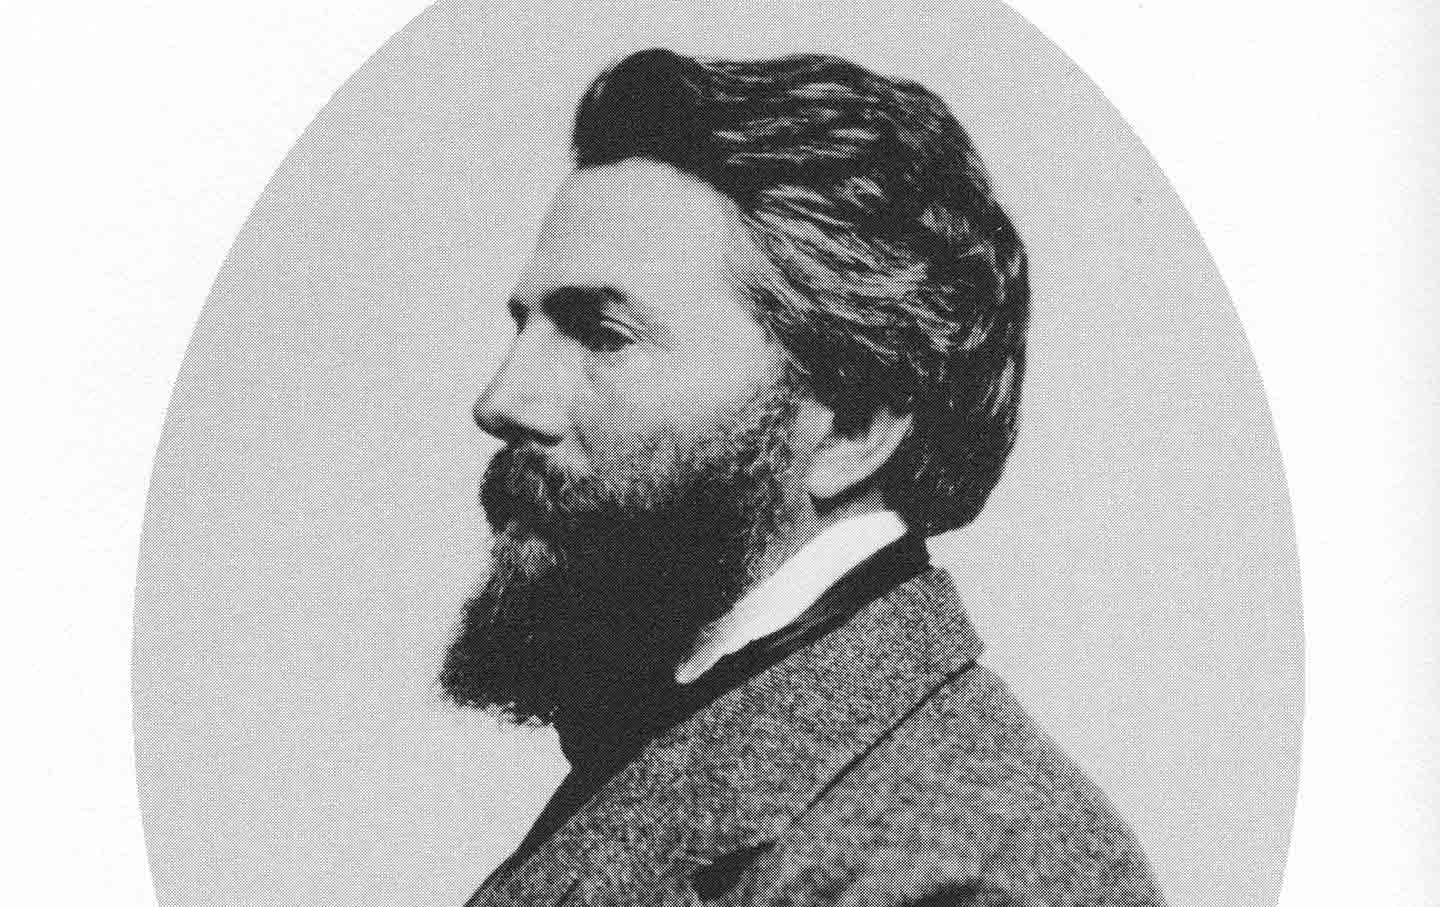 herman melville in 1860 wikimedia commons